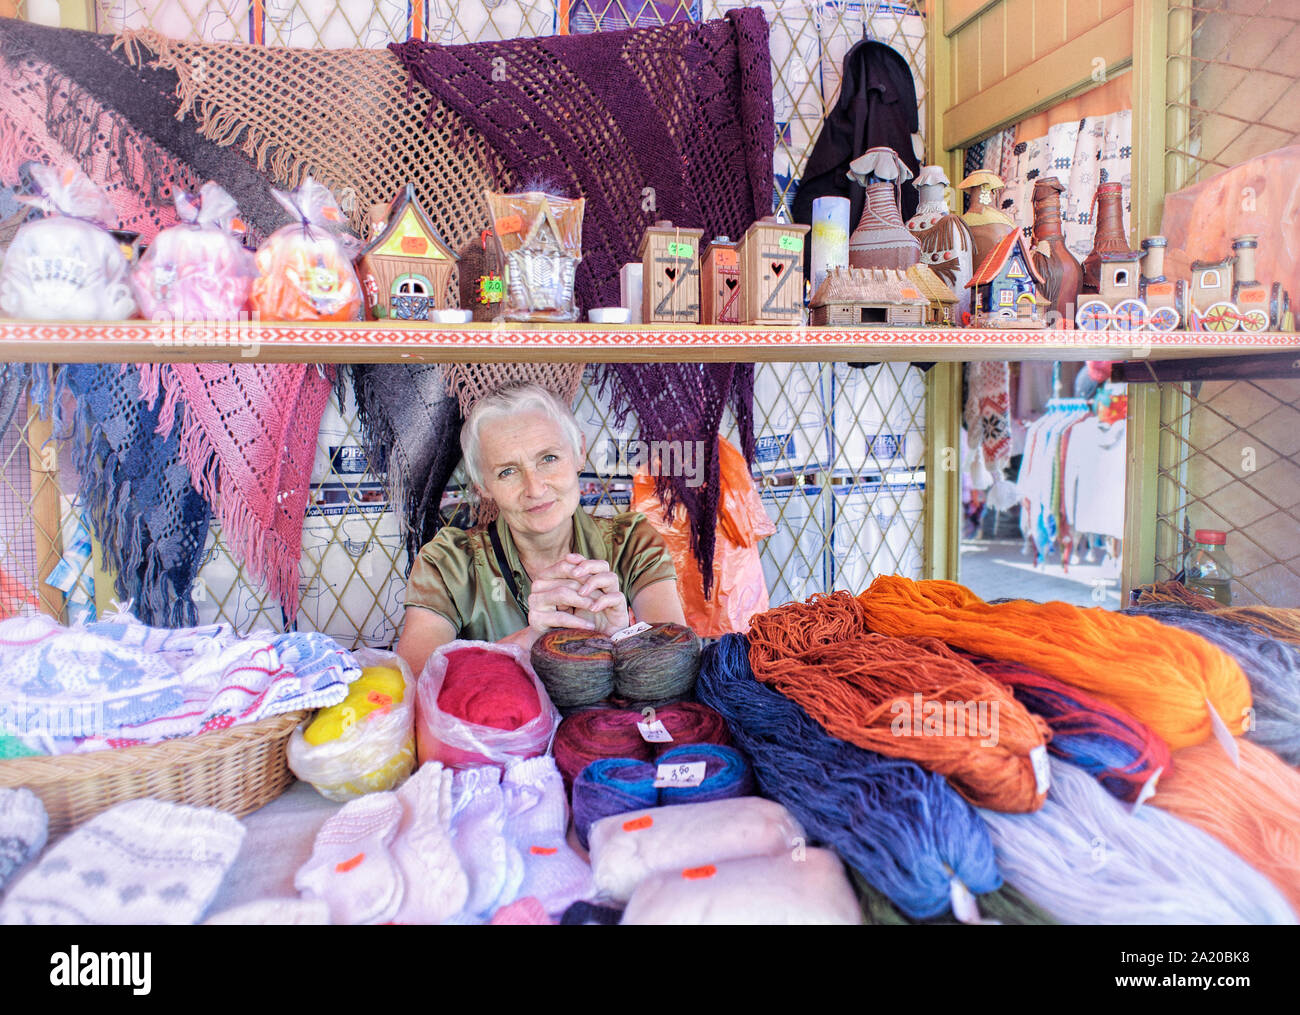 environmental-portrait-of-beautiful-estonian-shopkeeper-in-the-marketplace-tallinn-estonia-with-souvenirs-wool-woolen-goods-and-crafts-for-sale-2A20BK8.jpg